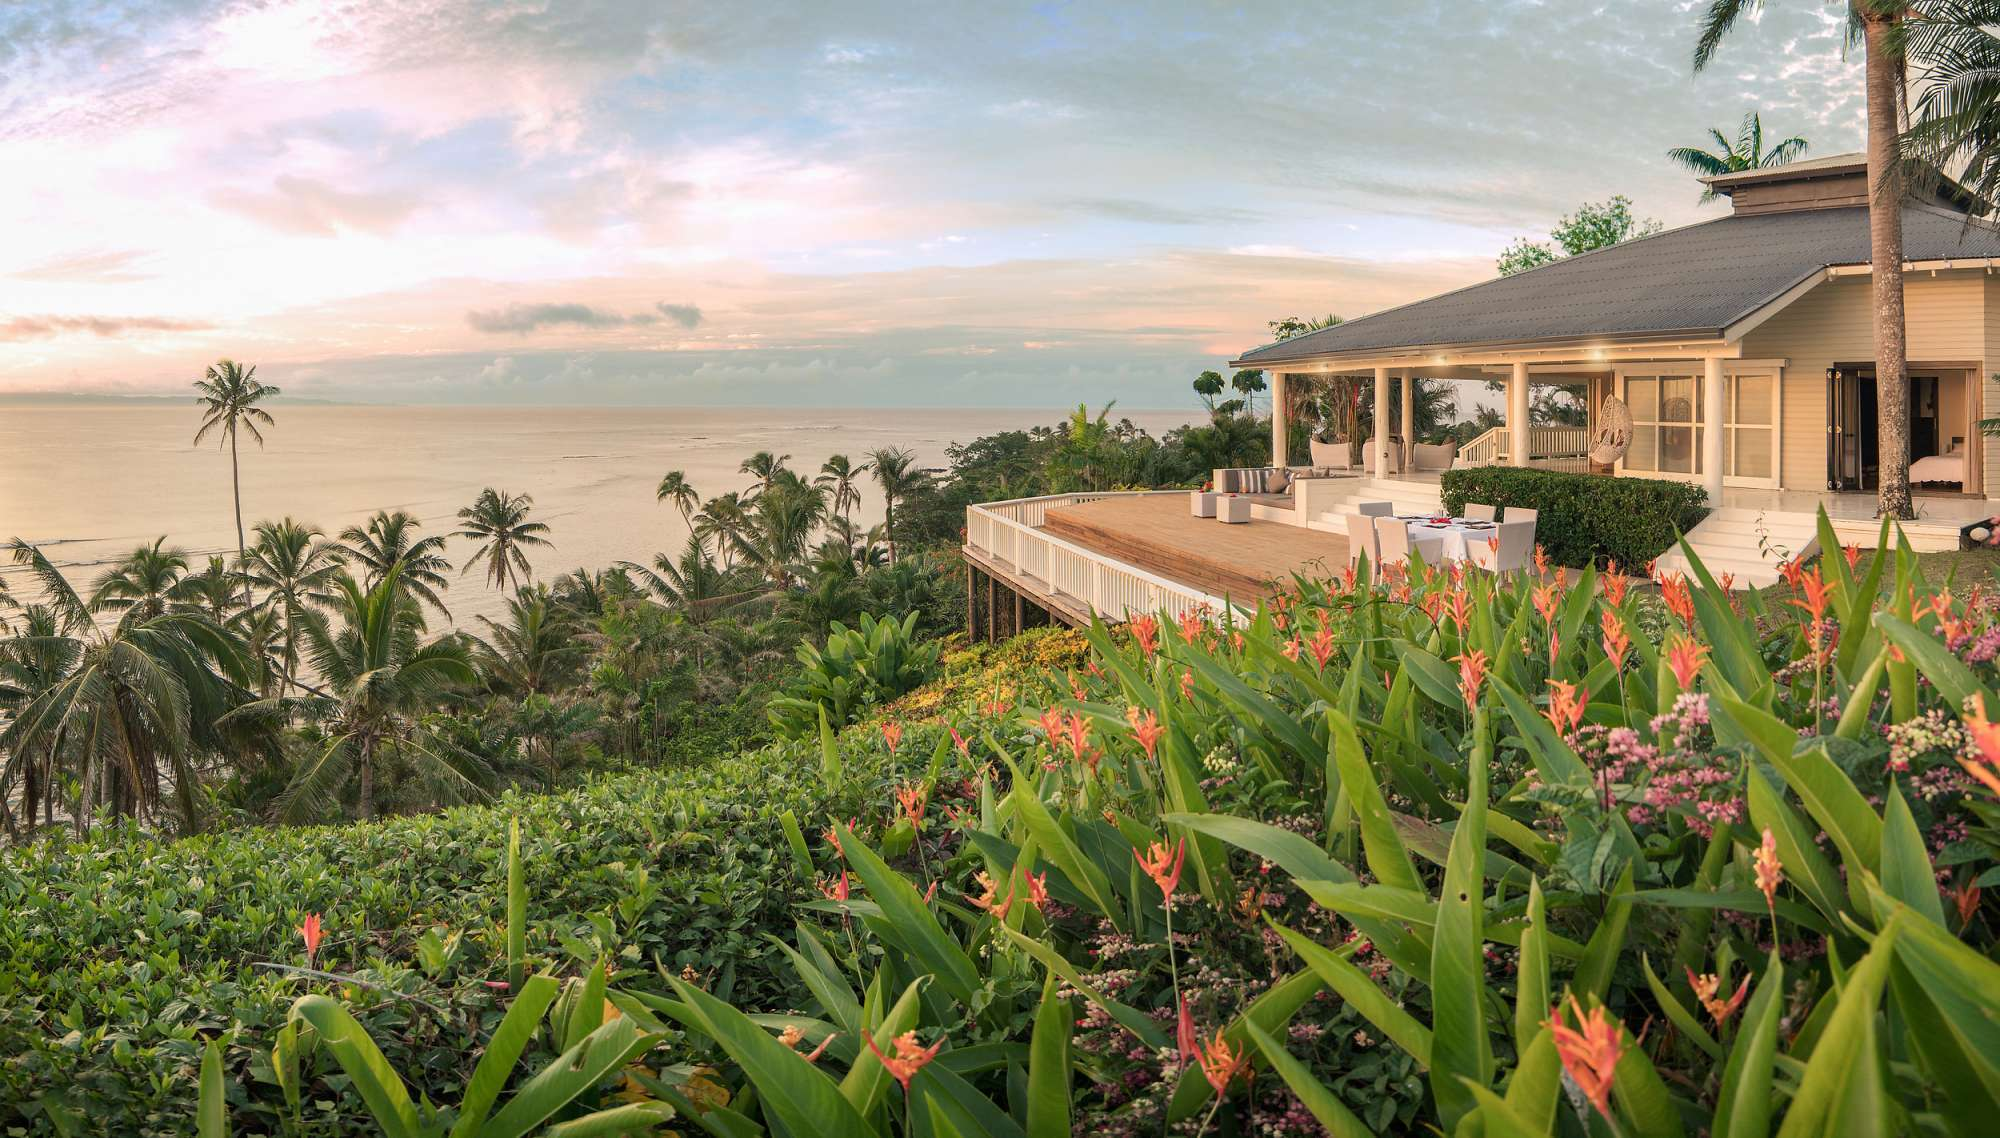 Raiwasa Resort Fiji at sunset with ocean view